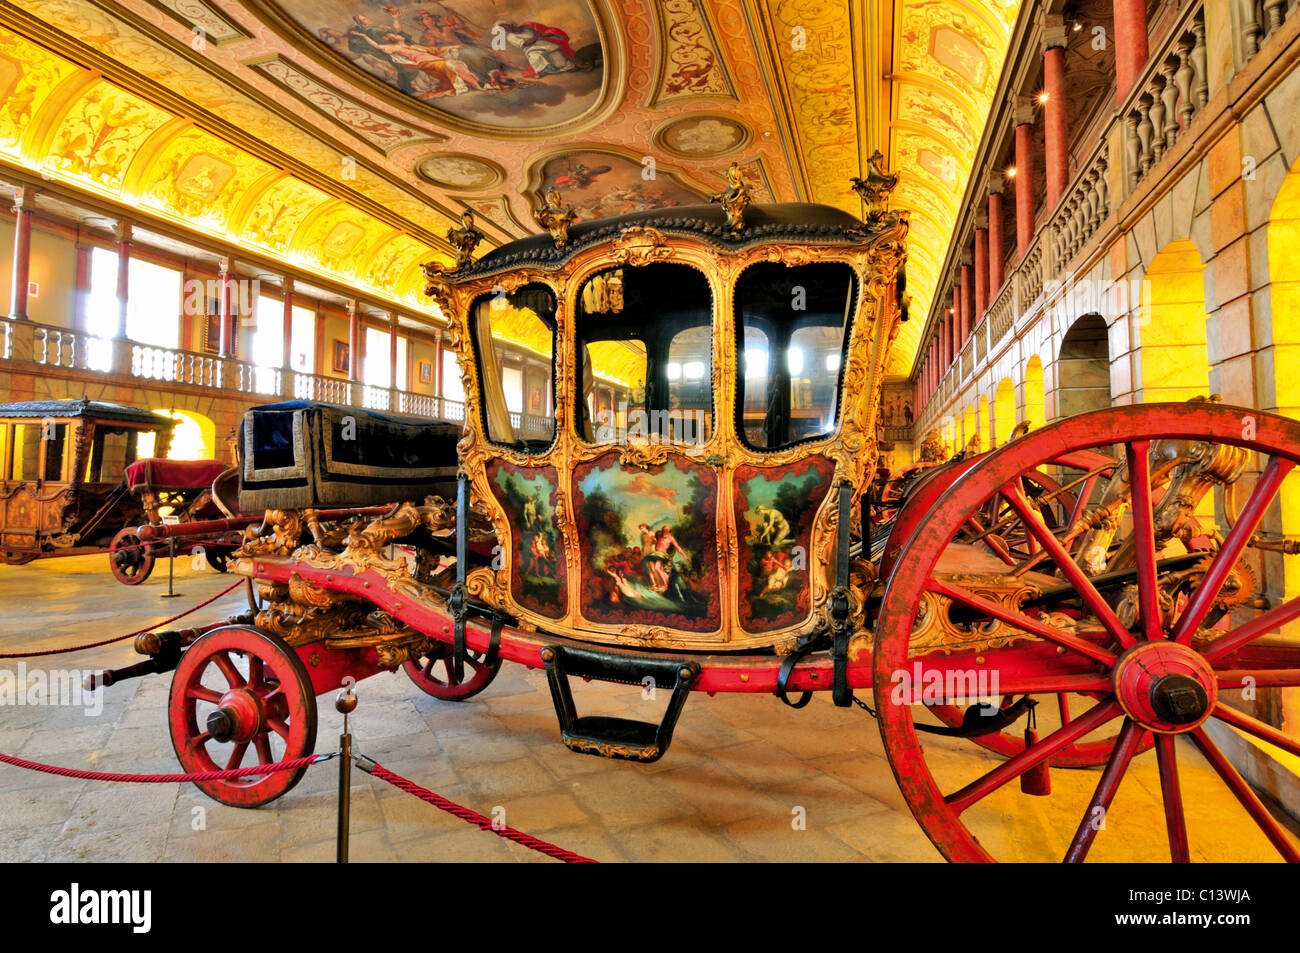 Portugal, Lisbon: Museum of the Carriages in Belem - Stock Image